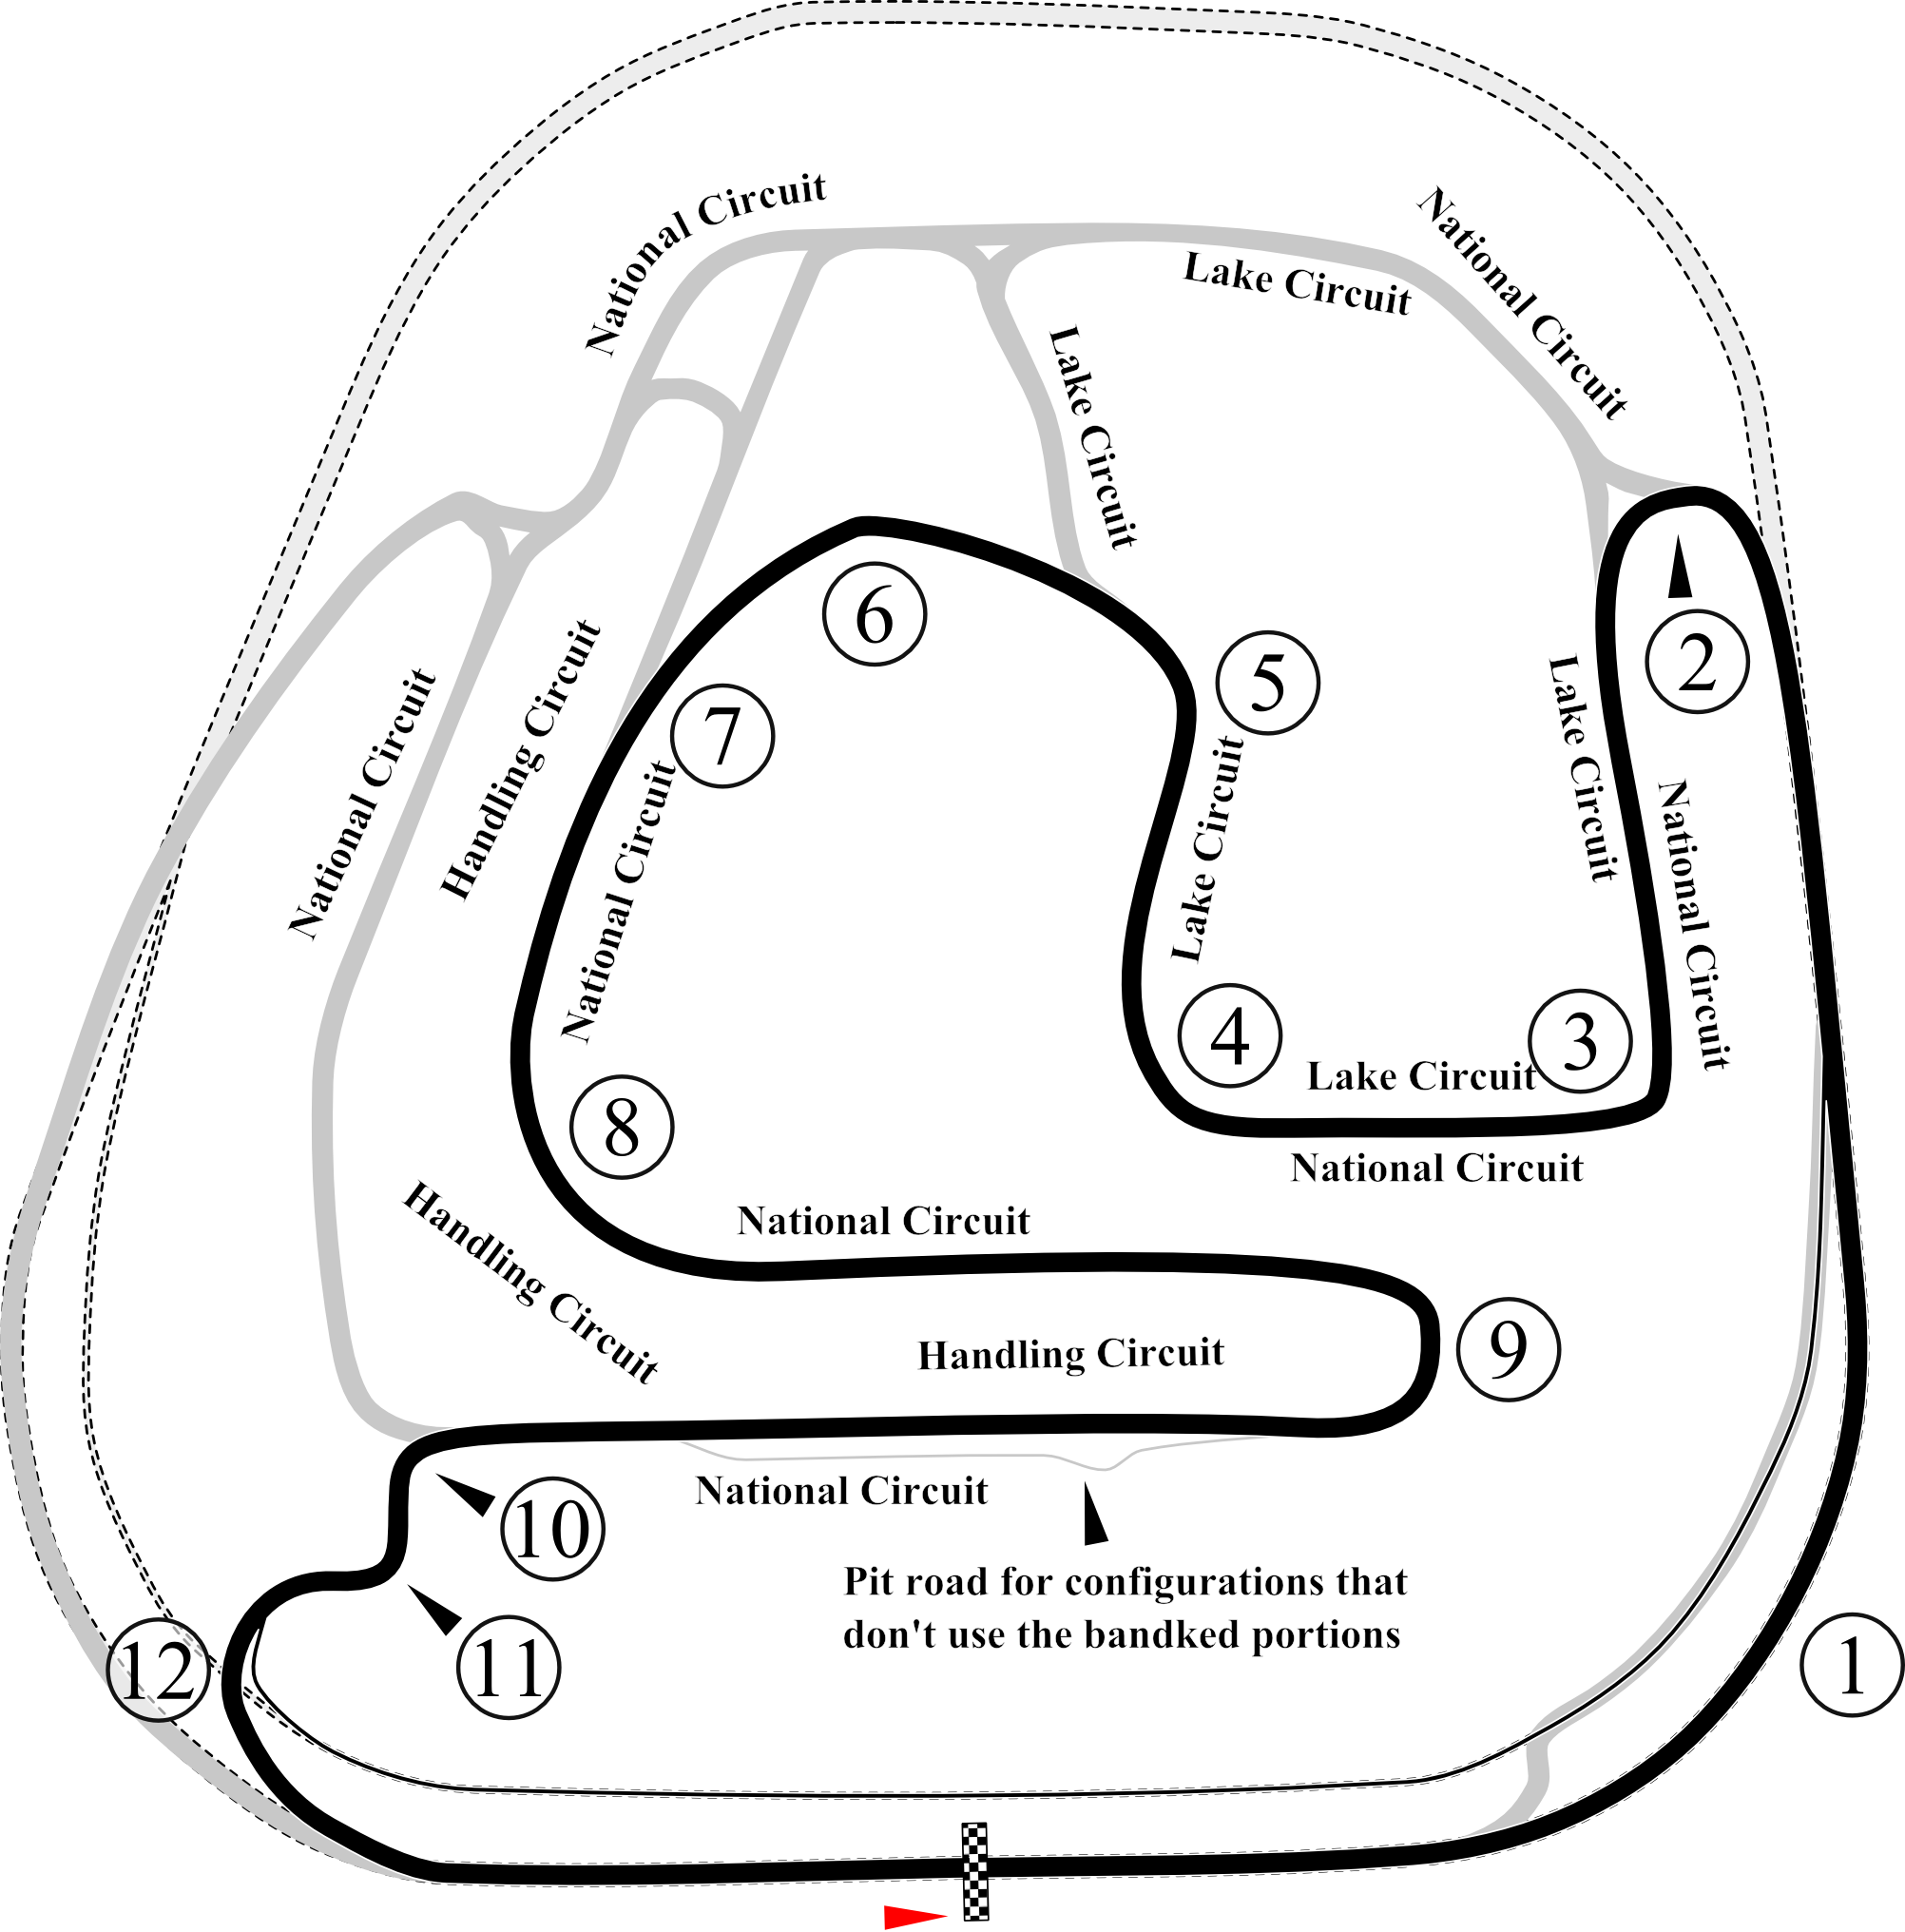 Rockingham_Motor_Speedway_-_Road_course